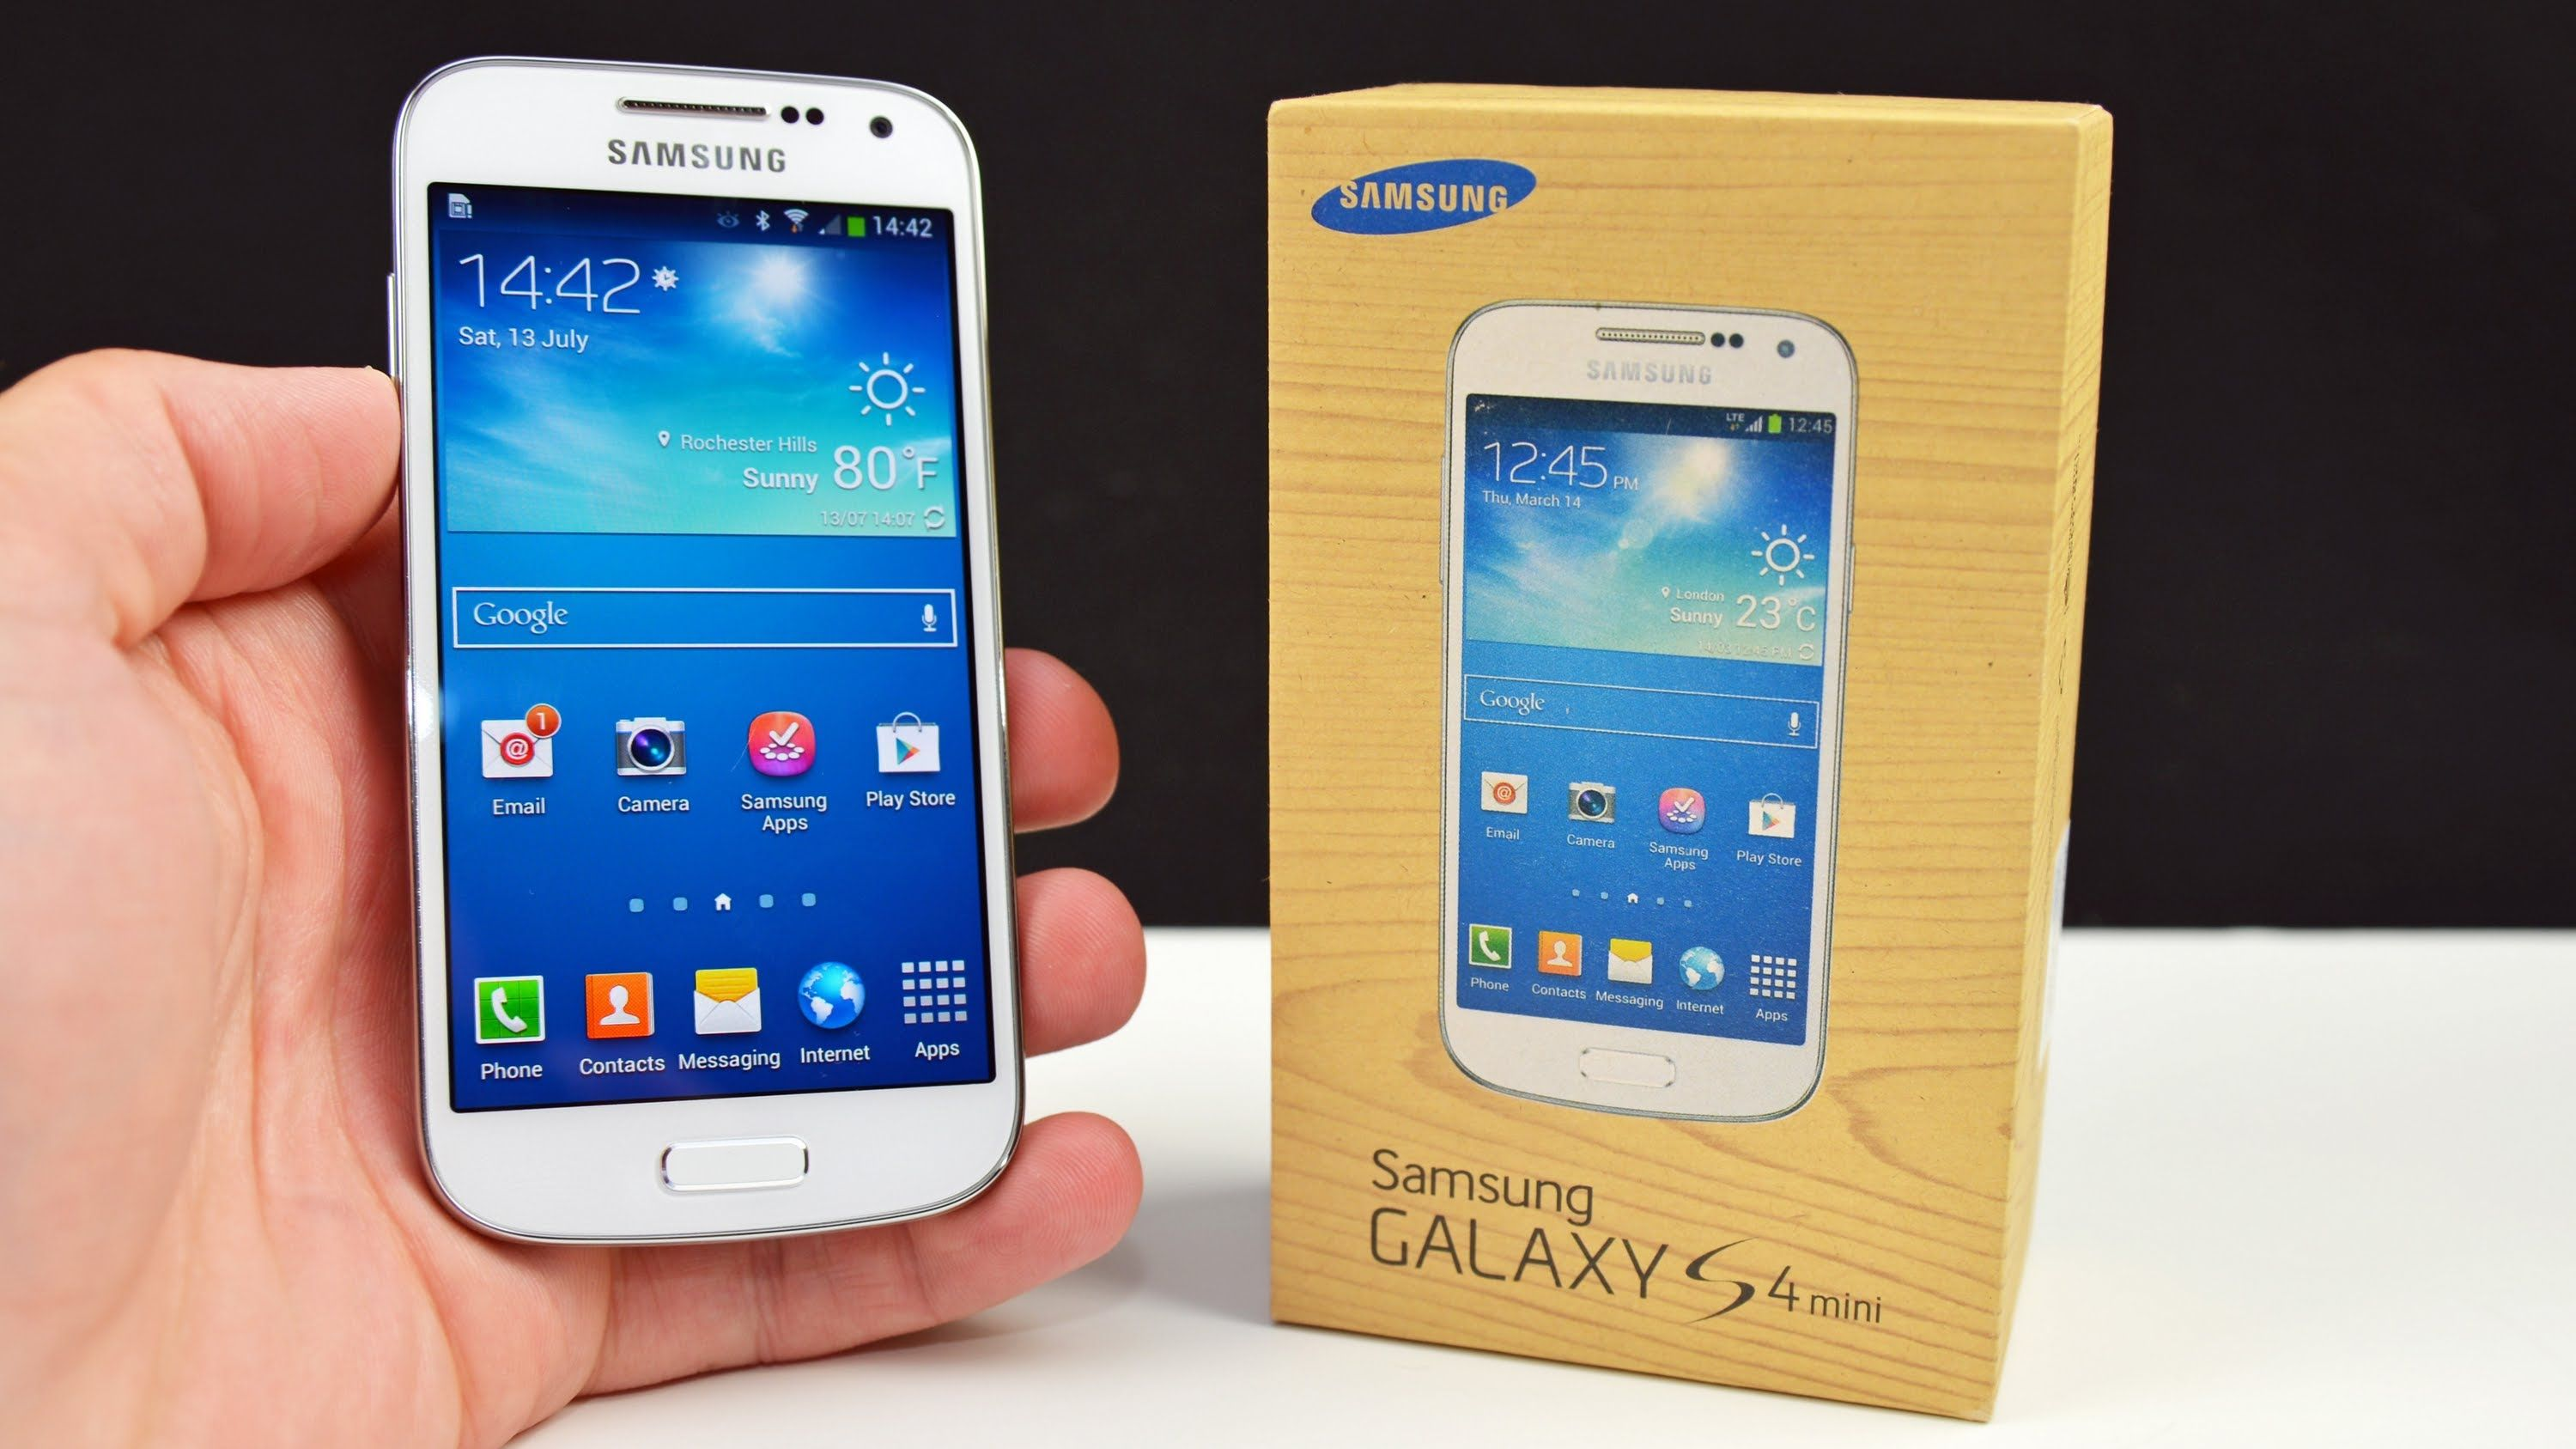 Stock ROM/Firmware Samsung GT-I9190 Galaxy S4 Mini (4 4 2